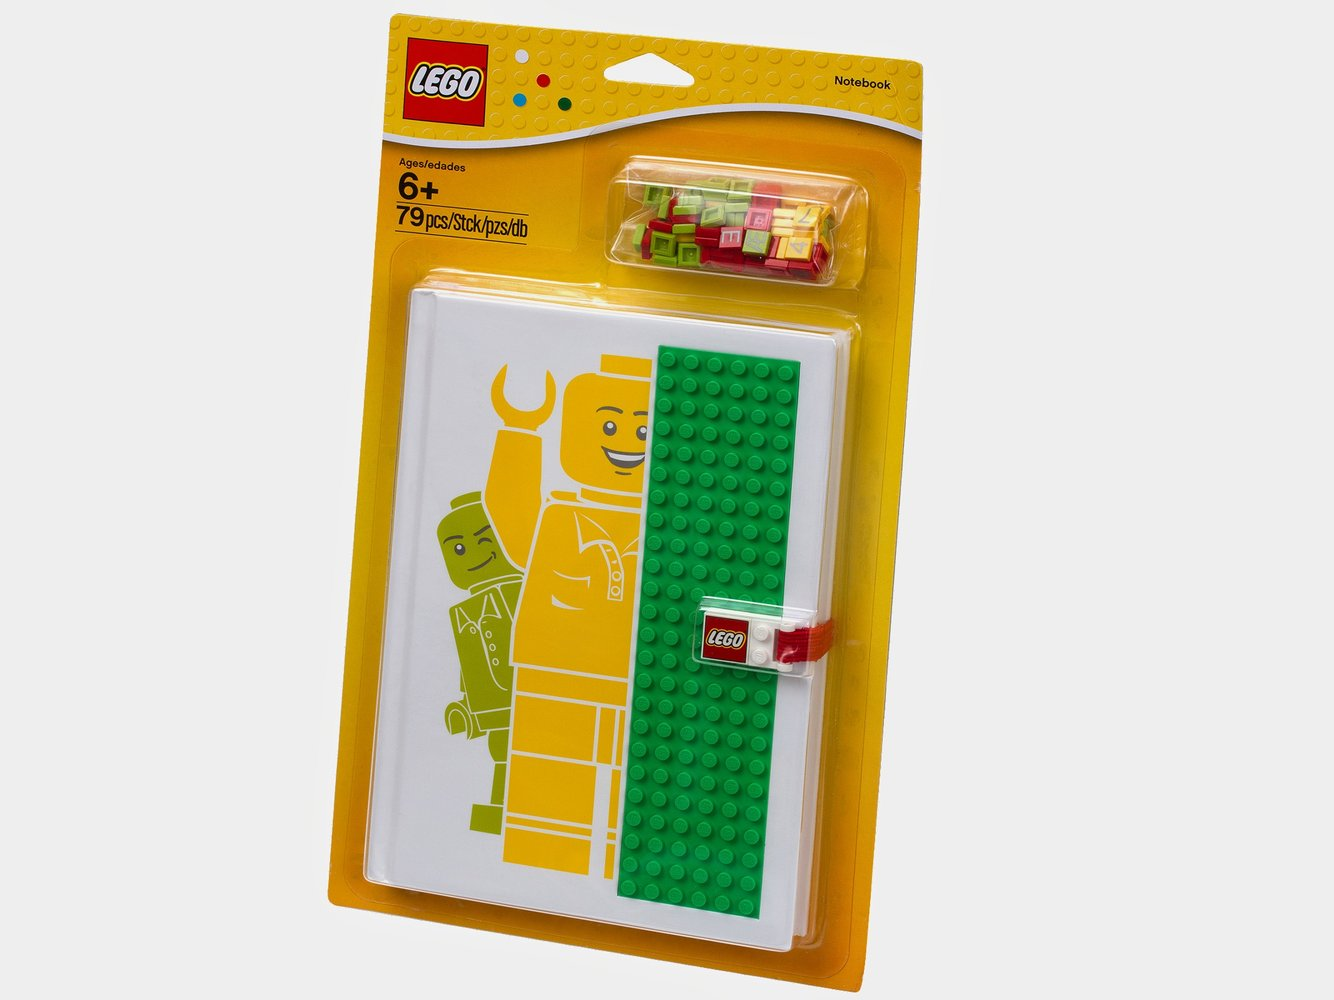 Notebook, Baseplate Cover with Alphanumeric Tiles and Lego Logo Clasp